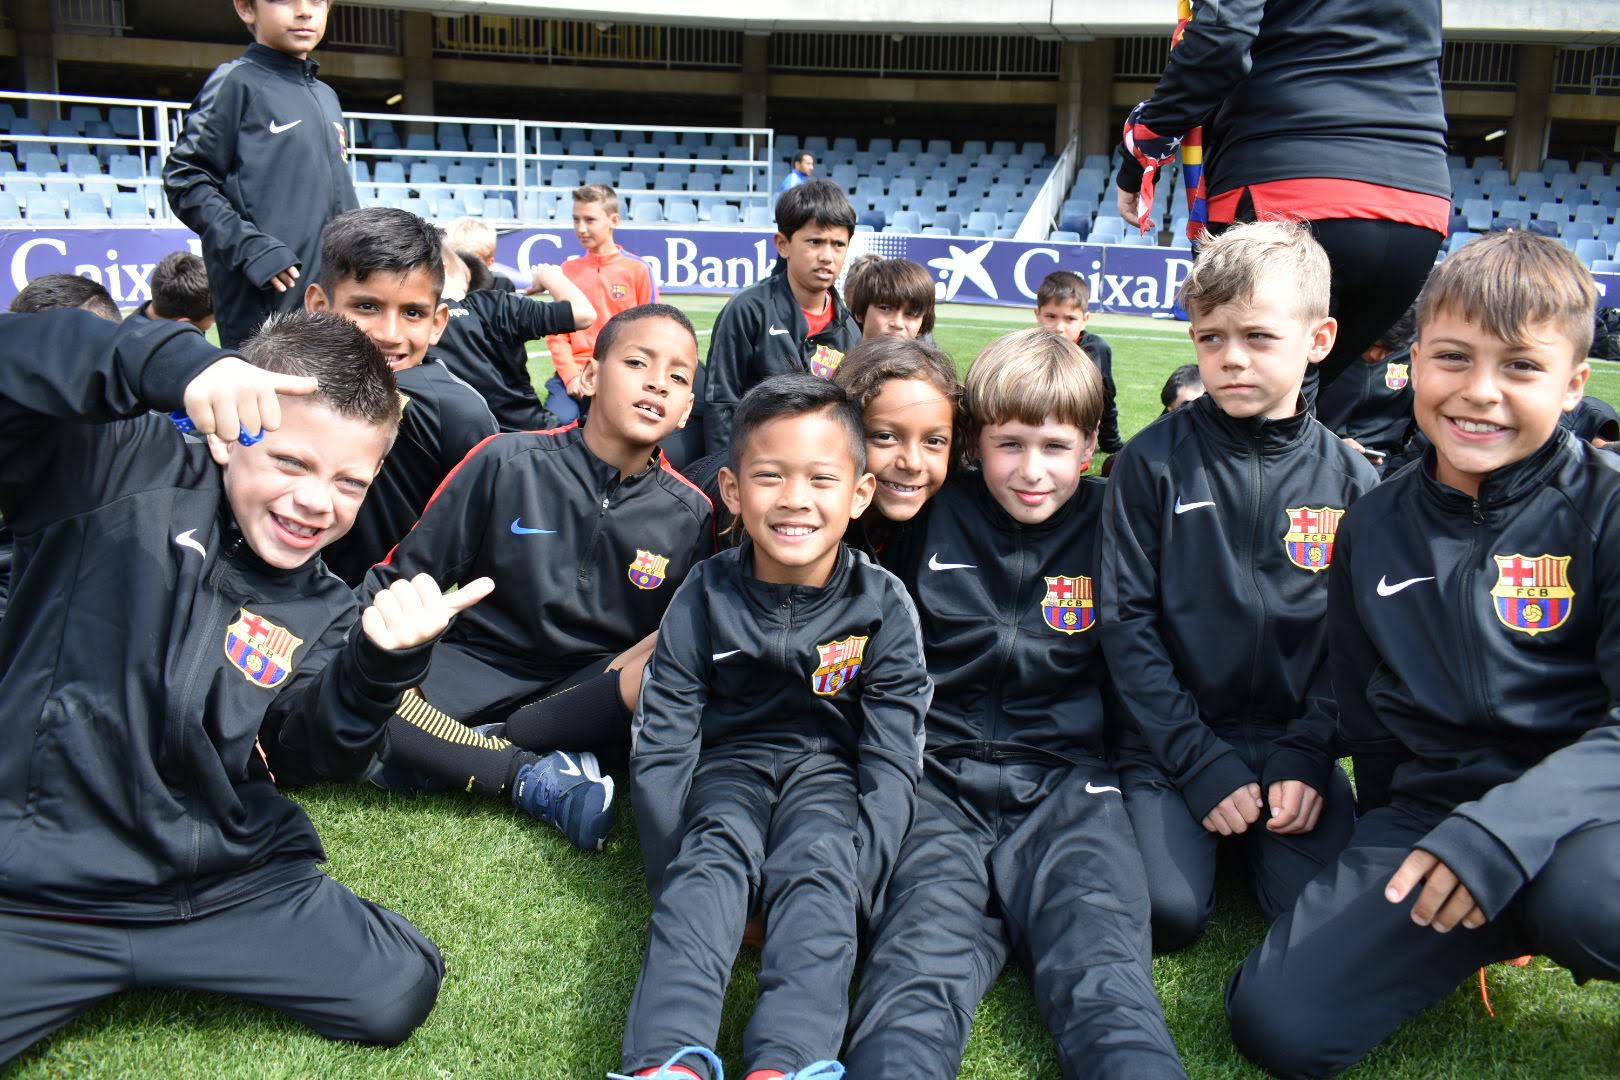 Some of our Players at Camp Nou